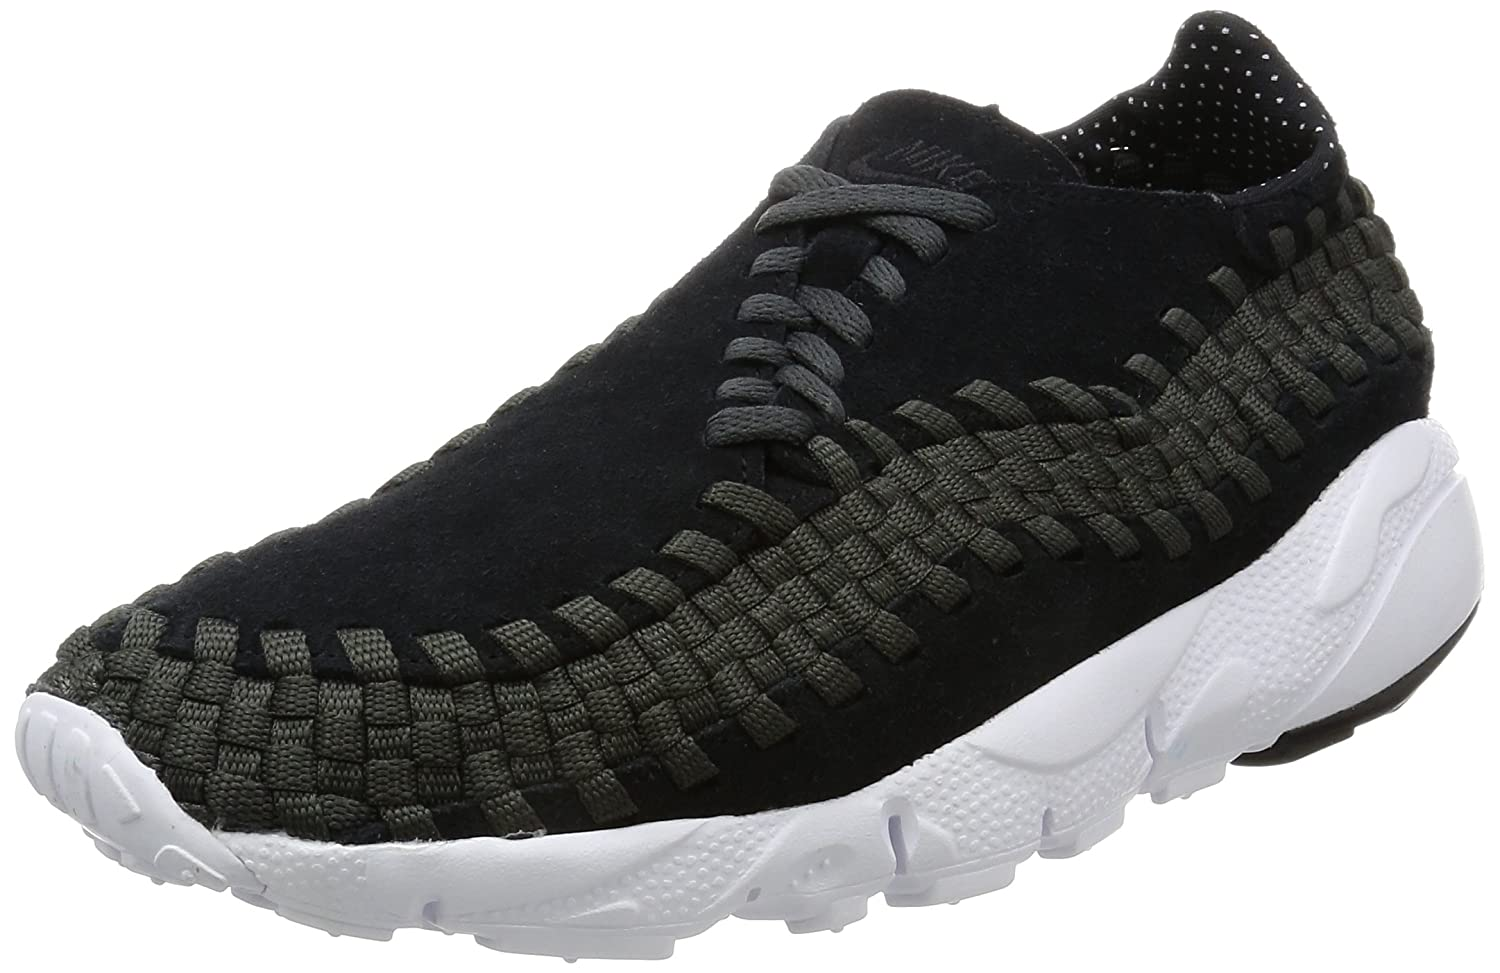 online retailer 4940e 1db76 Amazon.com   Nike Men s Air Footscape Woven NM Casual Shoe   Basketball